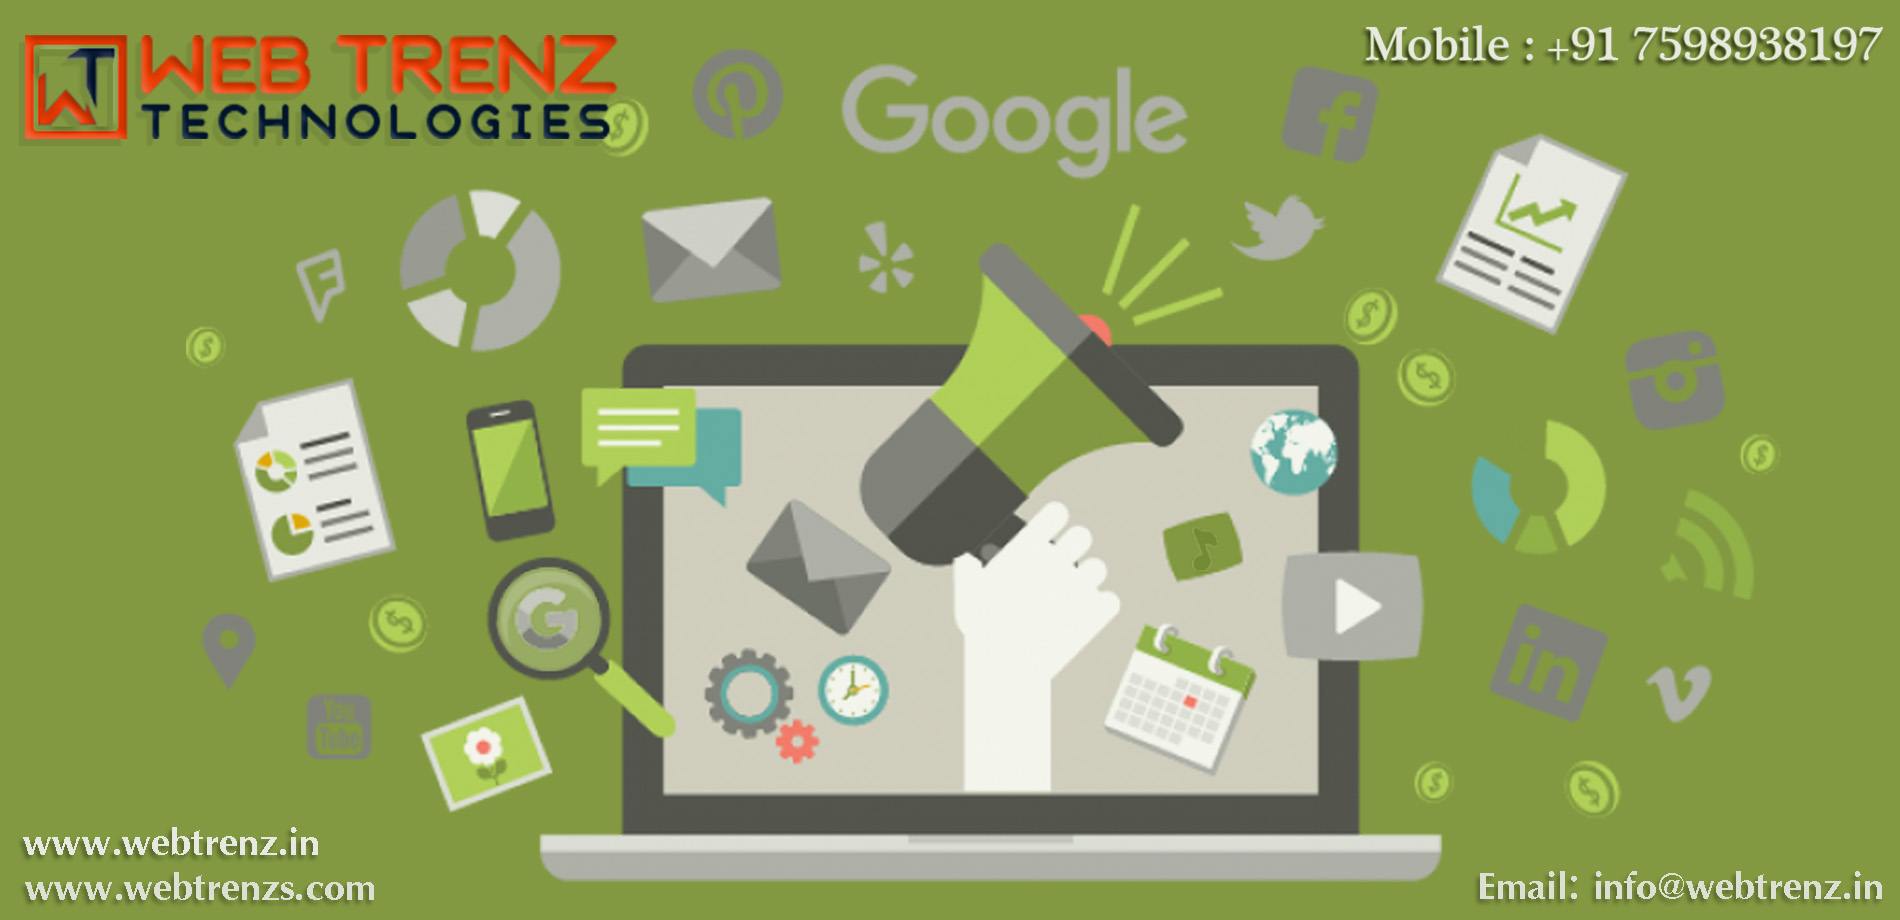 Web Trenz Technologies, Digital Marketing Company In Chennai, Digital Marketing Company In Vellore, Digital Marketing Company In Egmore, Digital Marketing Company In Annanagar, Digital Marketing Company In Kilpauk,